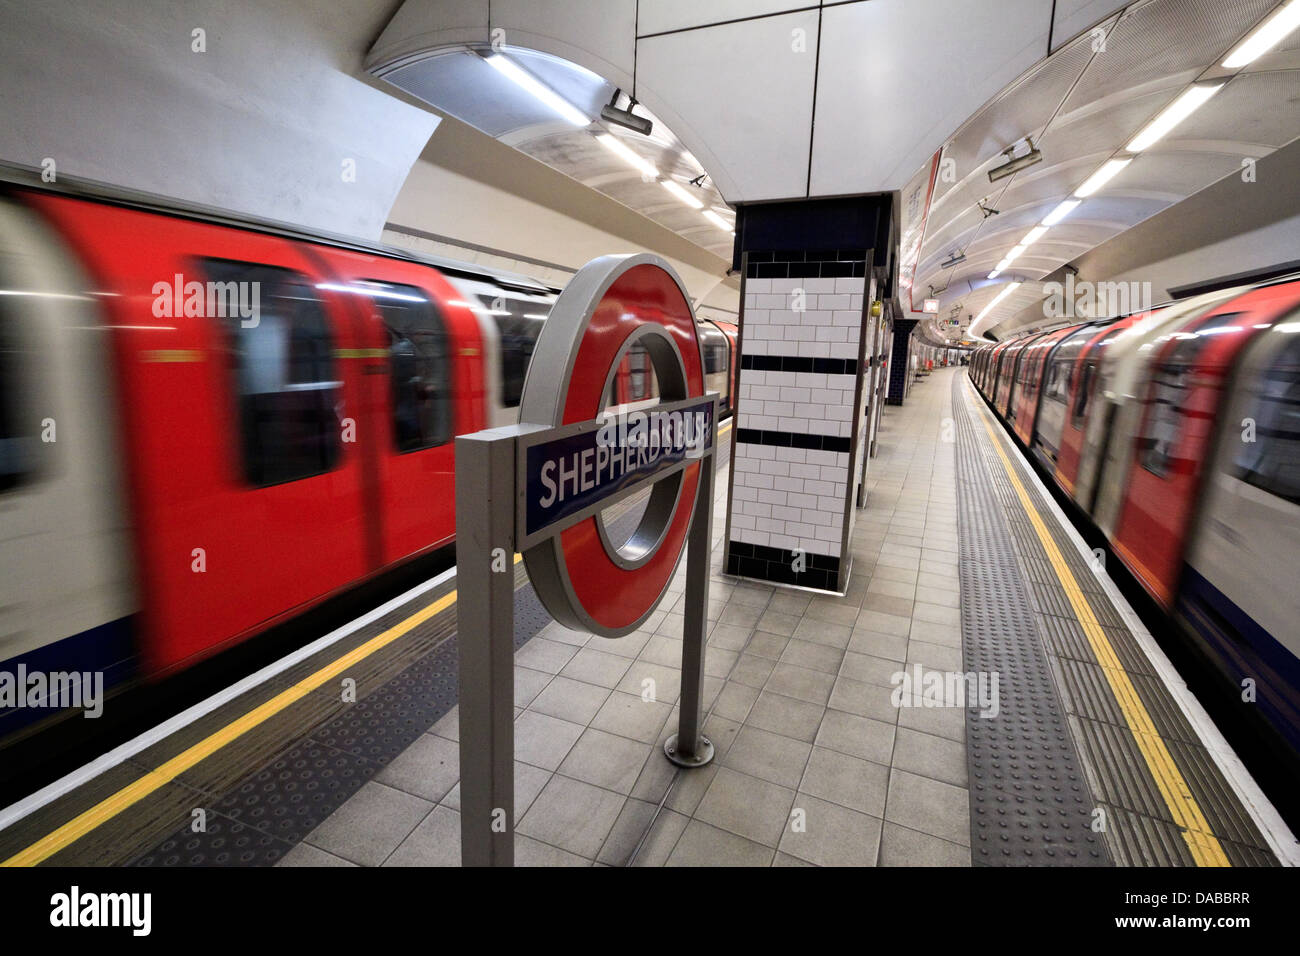 Trains pass at Shepherd's Bush station on the London Underground, London - Stock Image